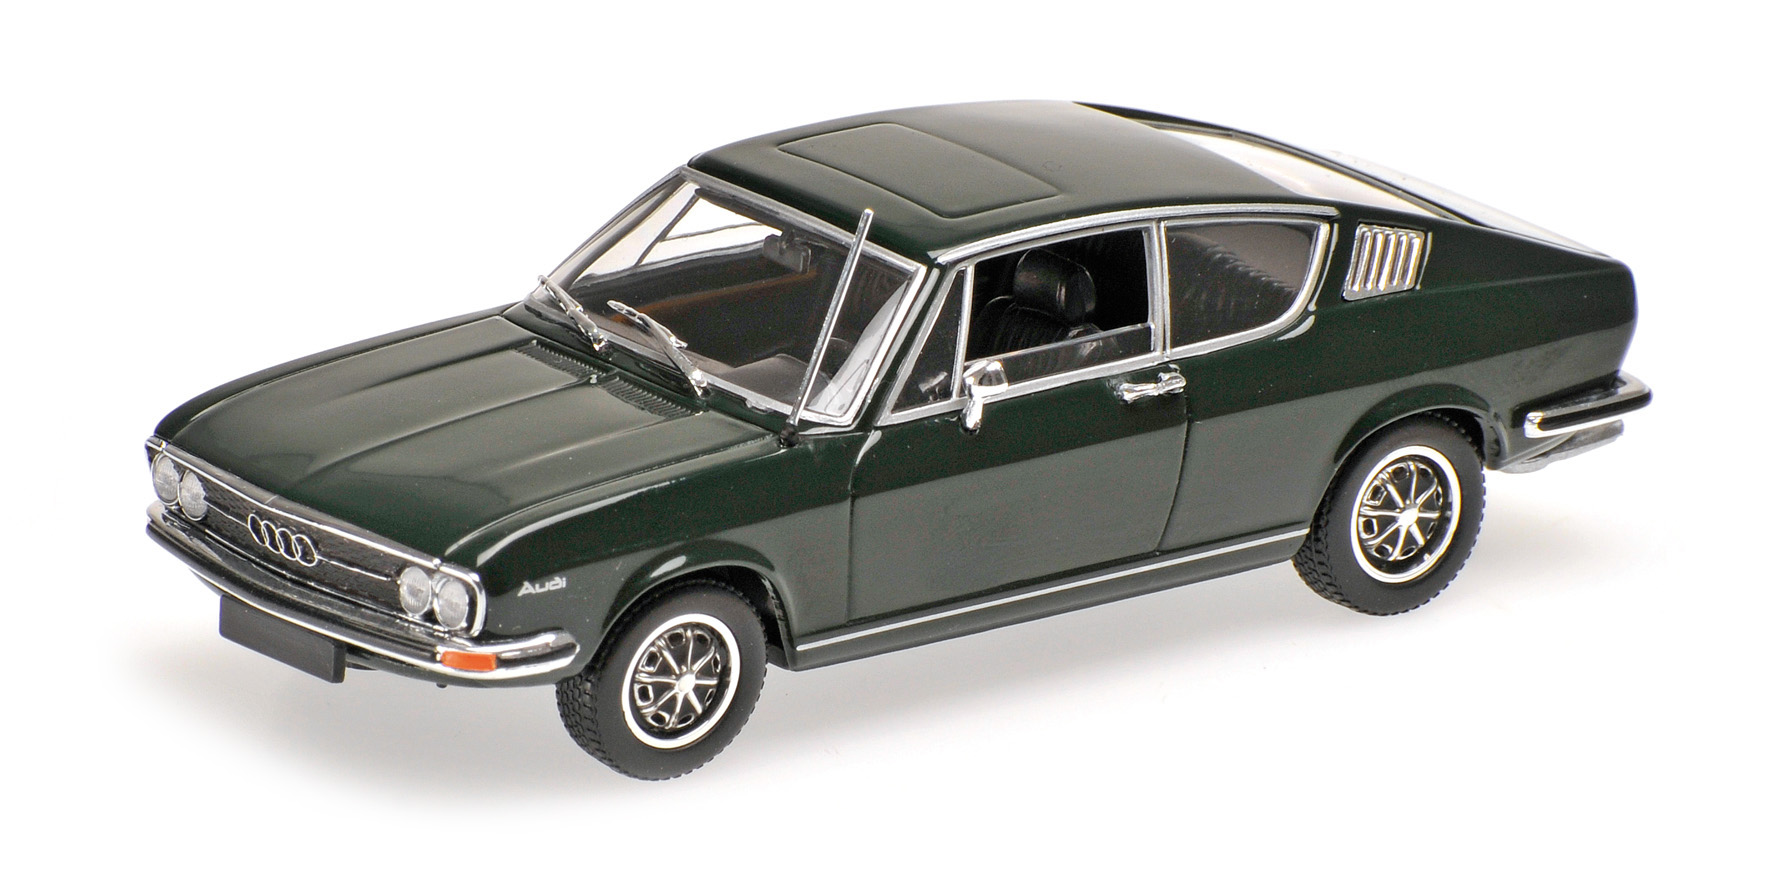 audi 100 coupe 39 s 1969 dark green ripa srl. Black Bedroom Furniture Sets. Home Design Ideas